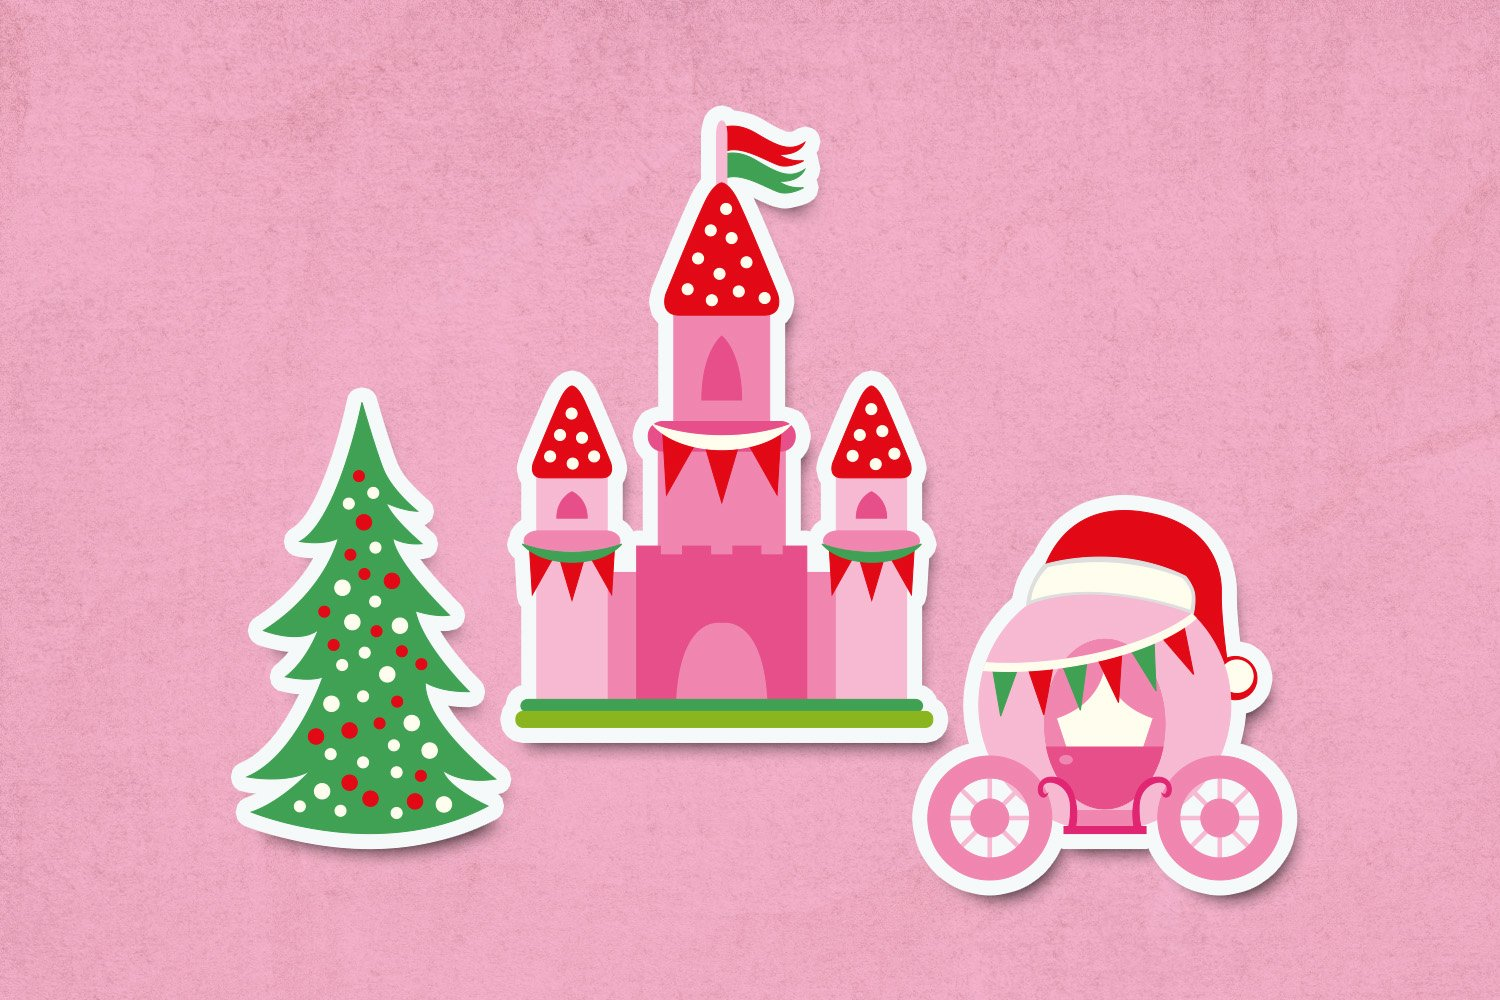 Christmas fairy tale illustrations clip art example image 3